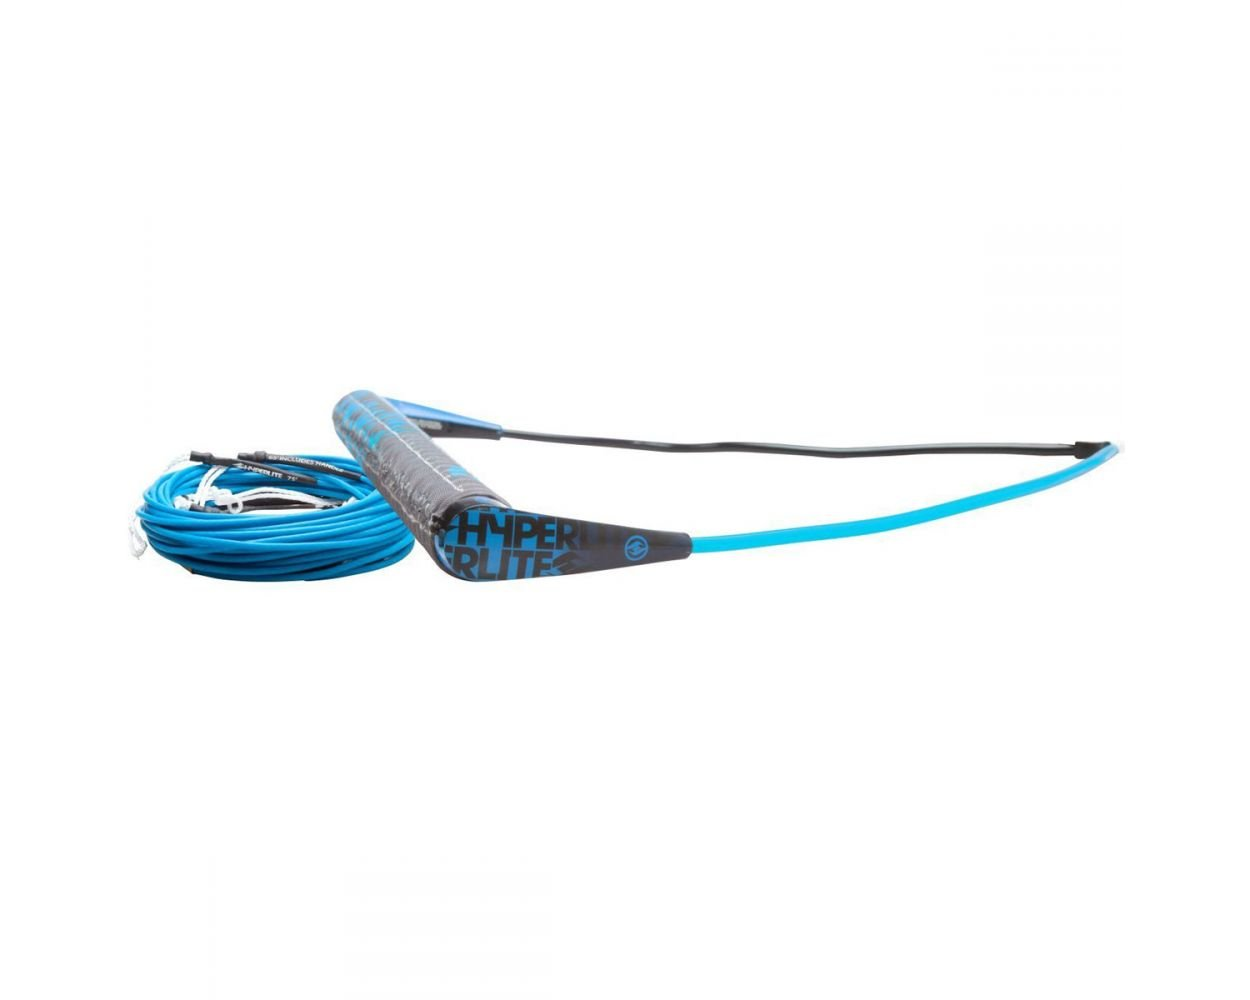 HL SG w/70' X-Line Blue Rope & 15 Handle